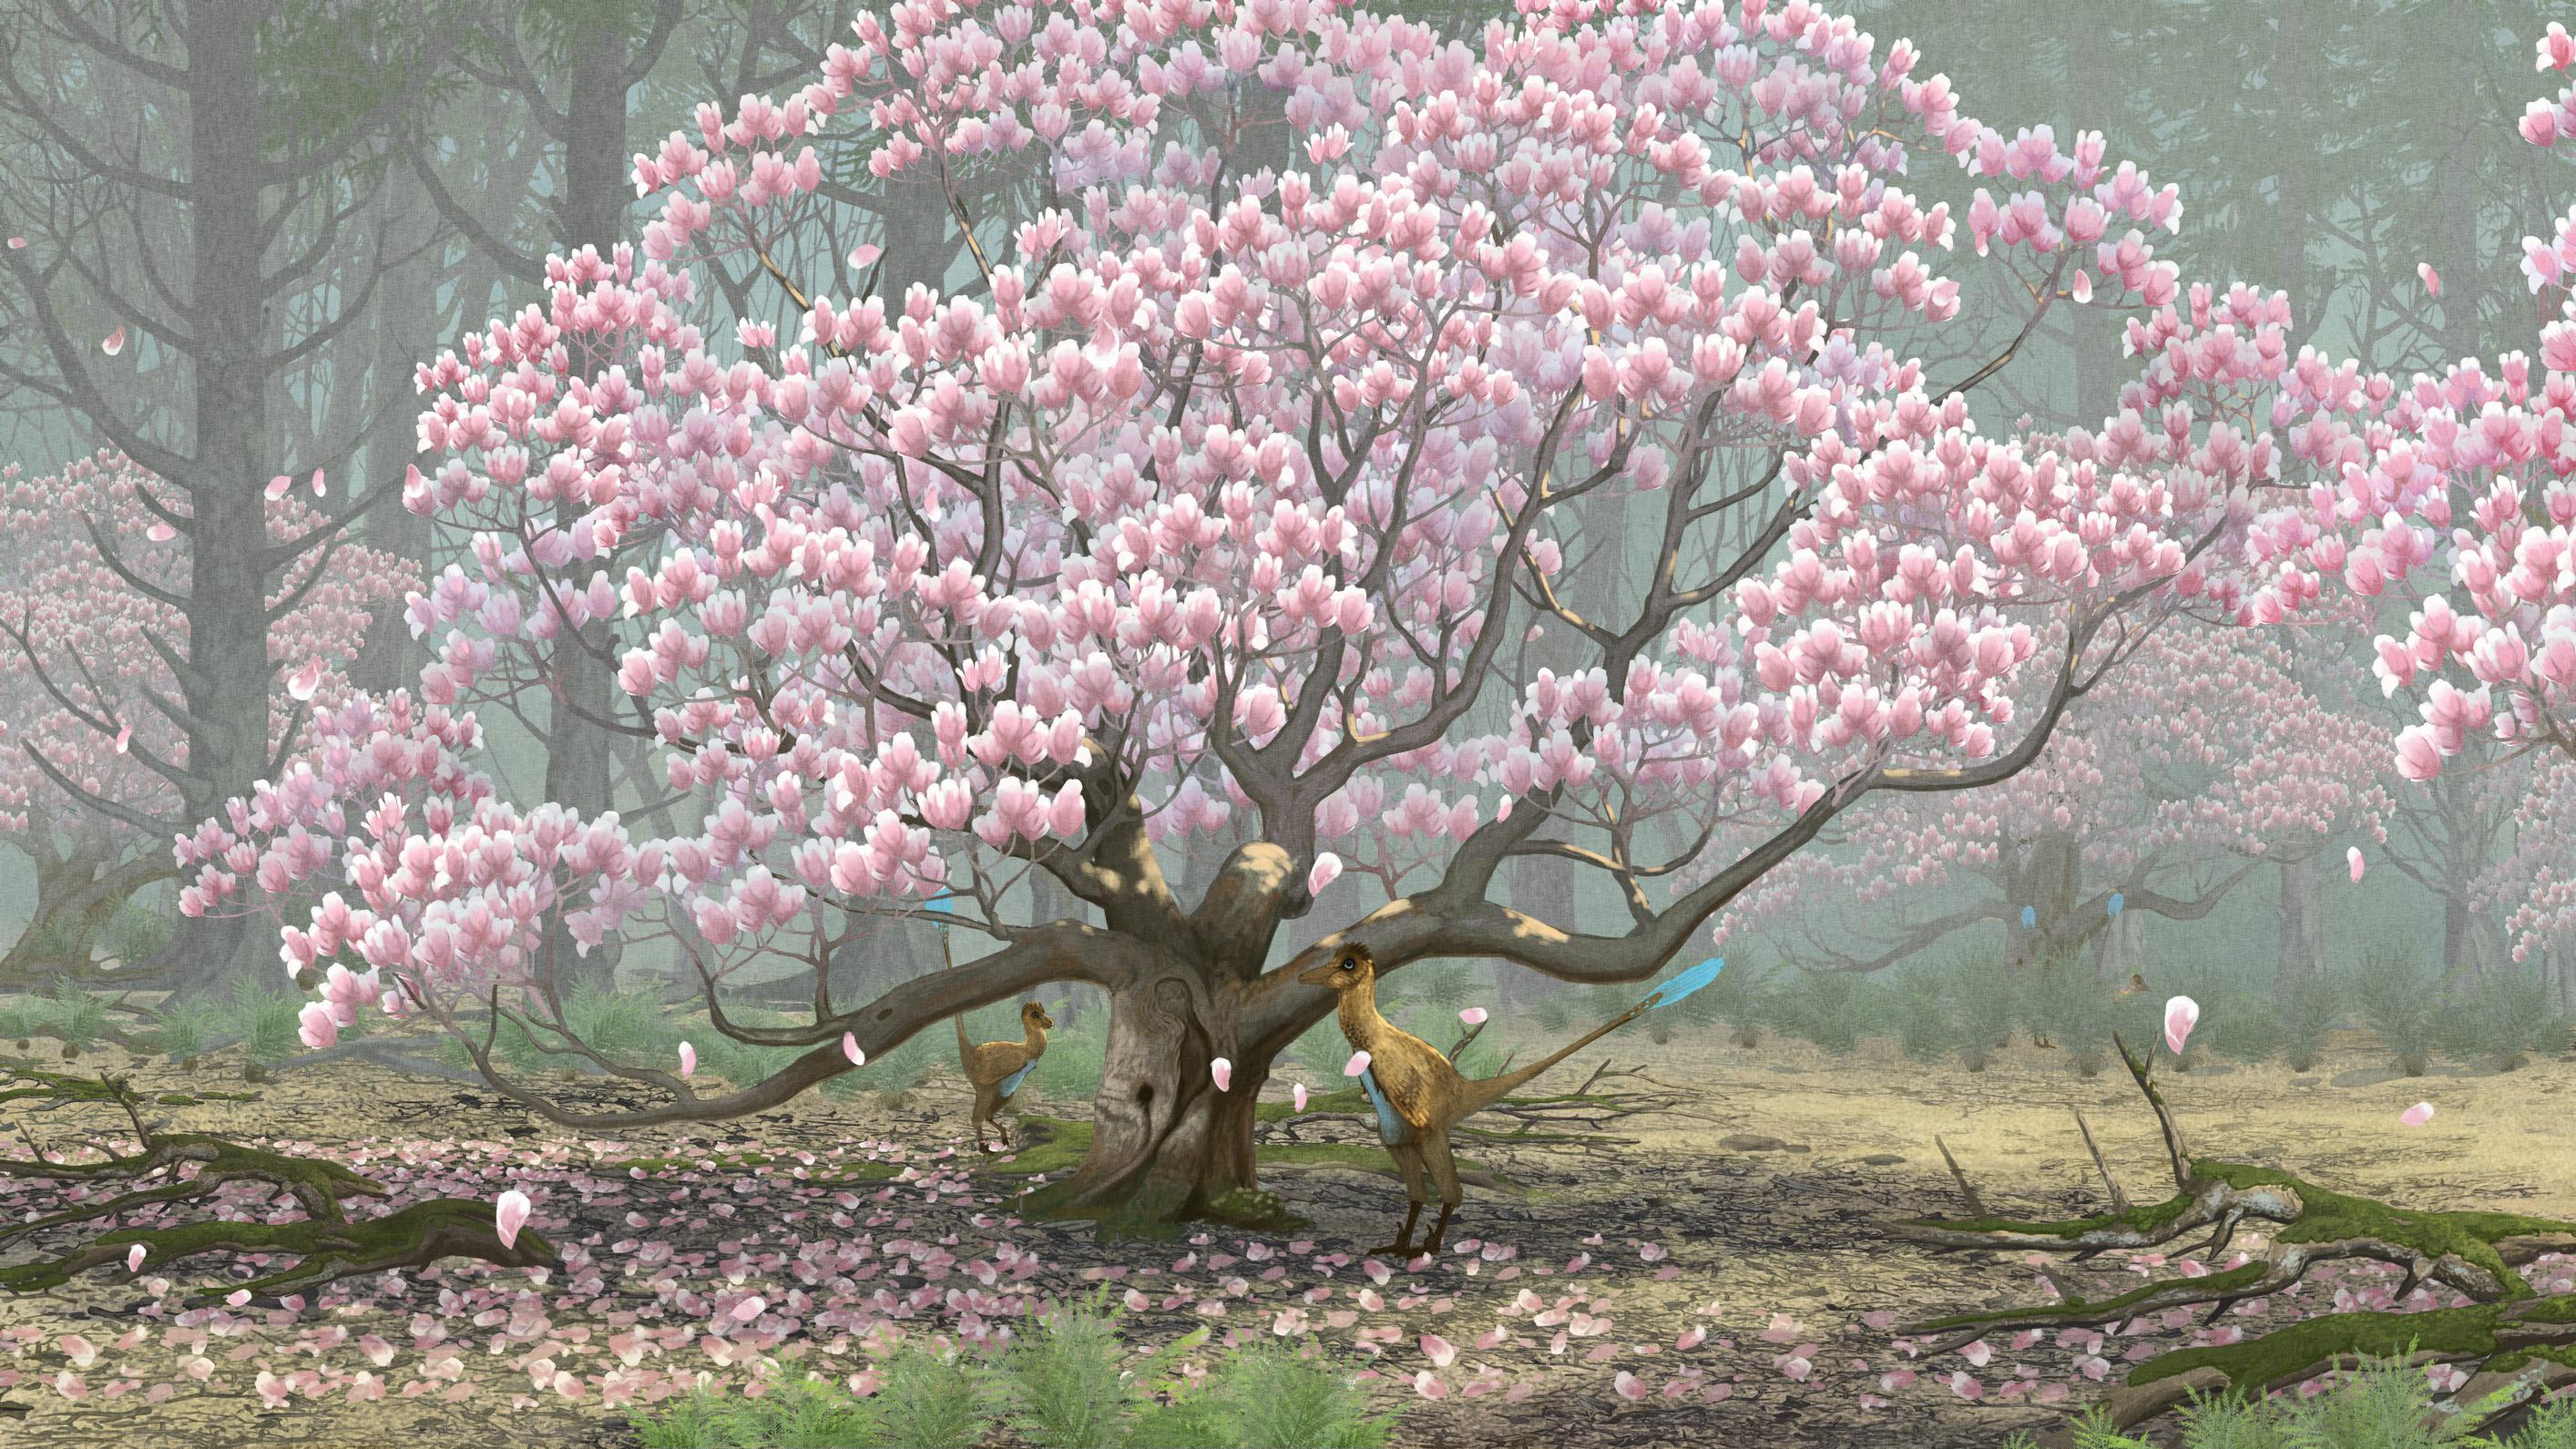 palaeo, painting, paleo, dinosaurs, troodon, arctic, canada, magnolias, flowers, feathered dinosaurs